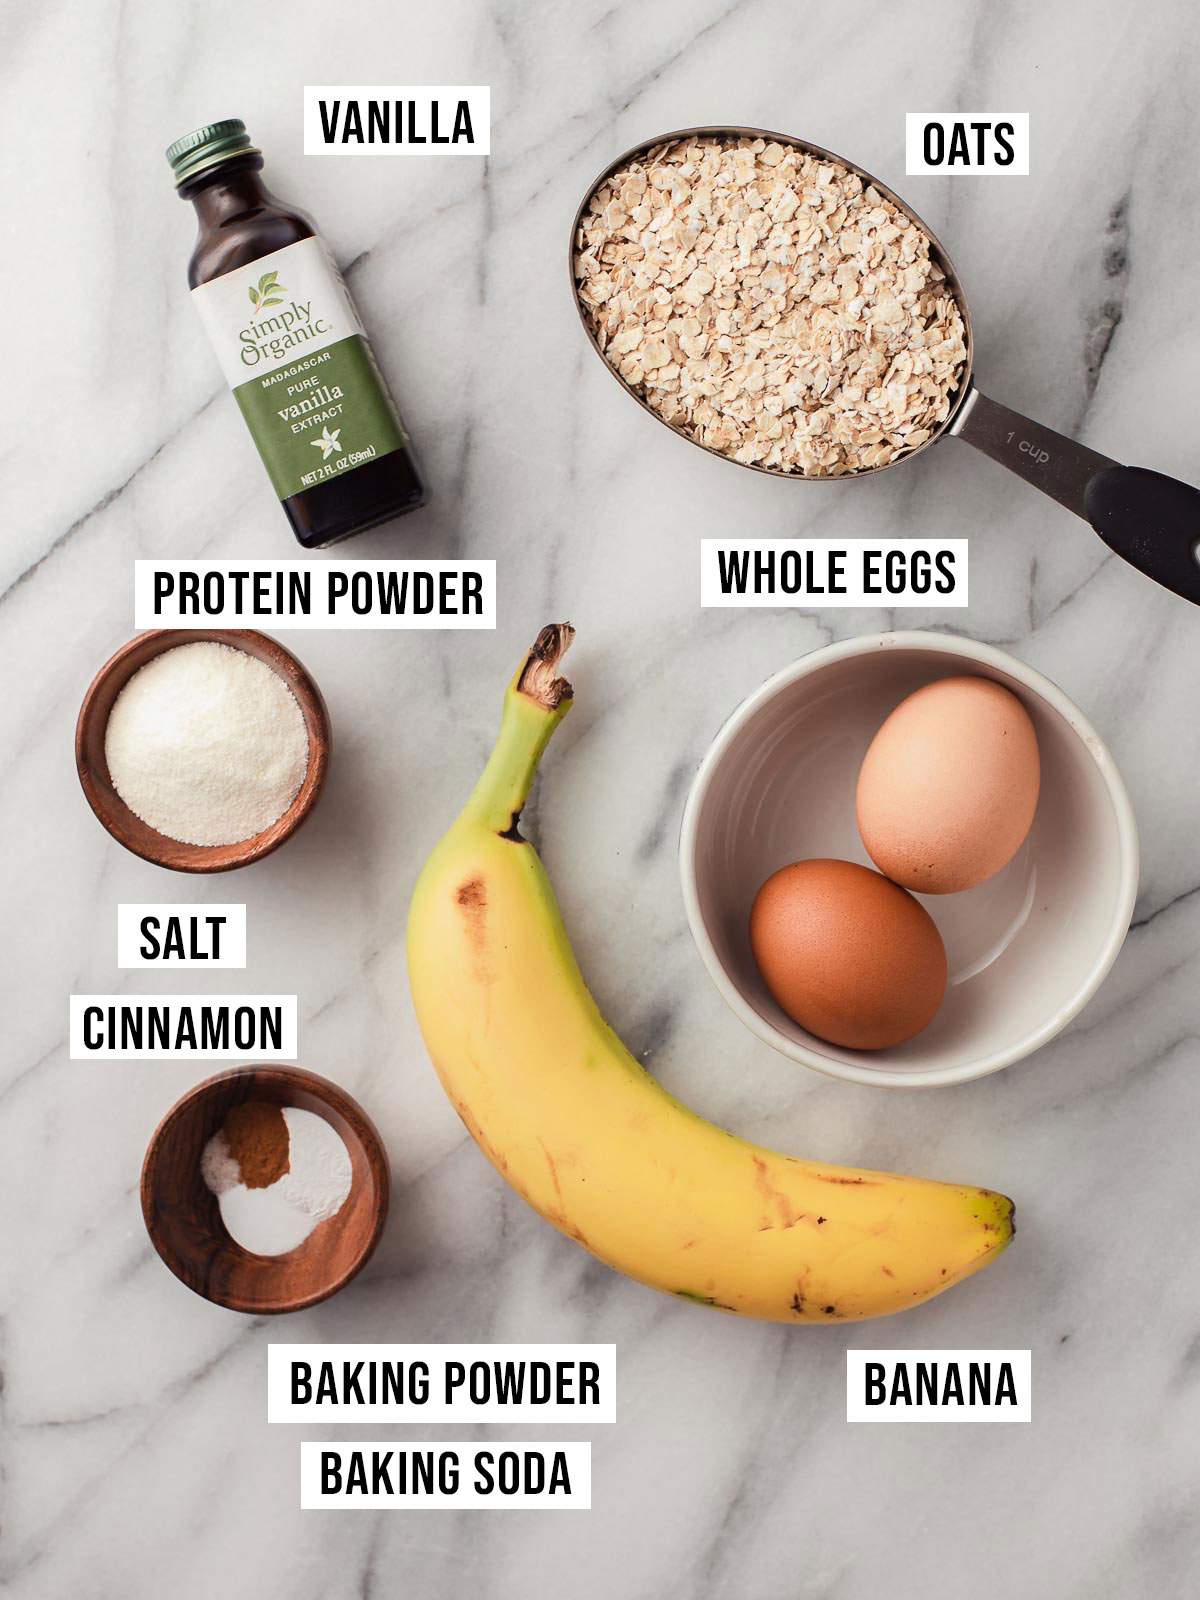 Protein pancake ingredients on a table.